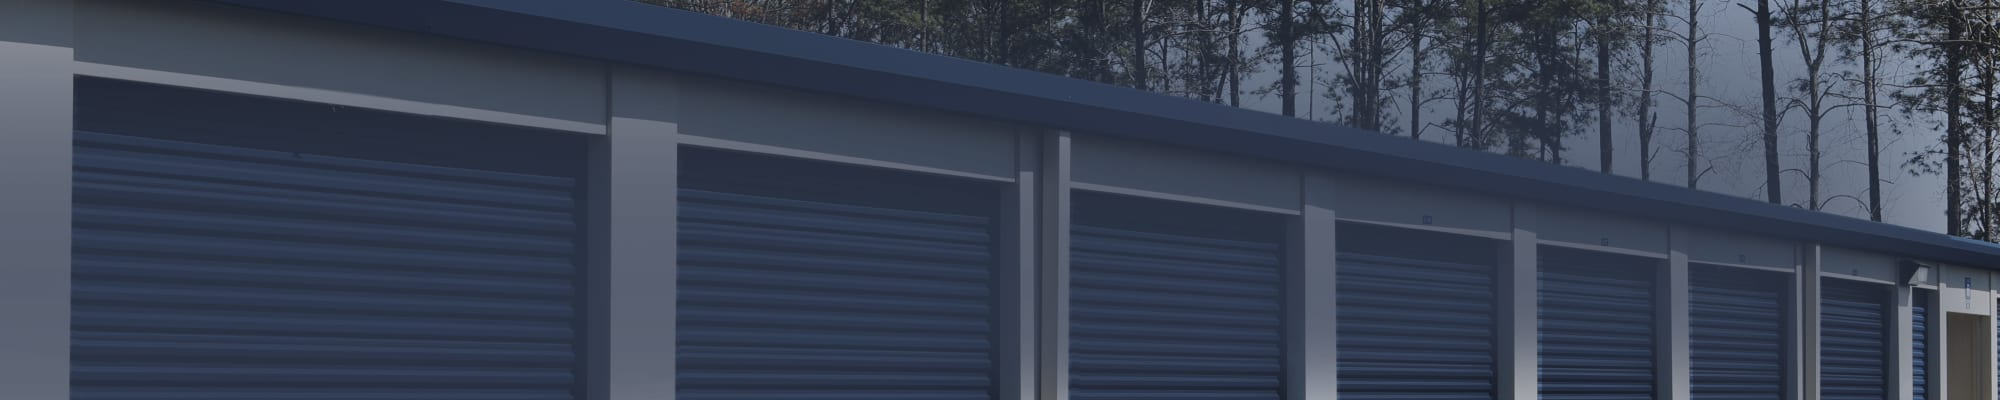 Contact Midgard Self Storage in Wilmington, North Carolina